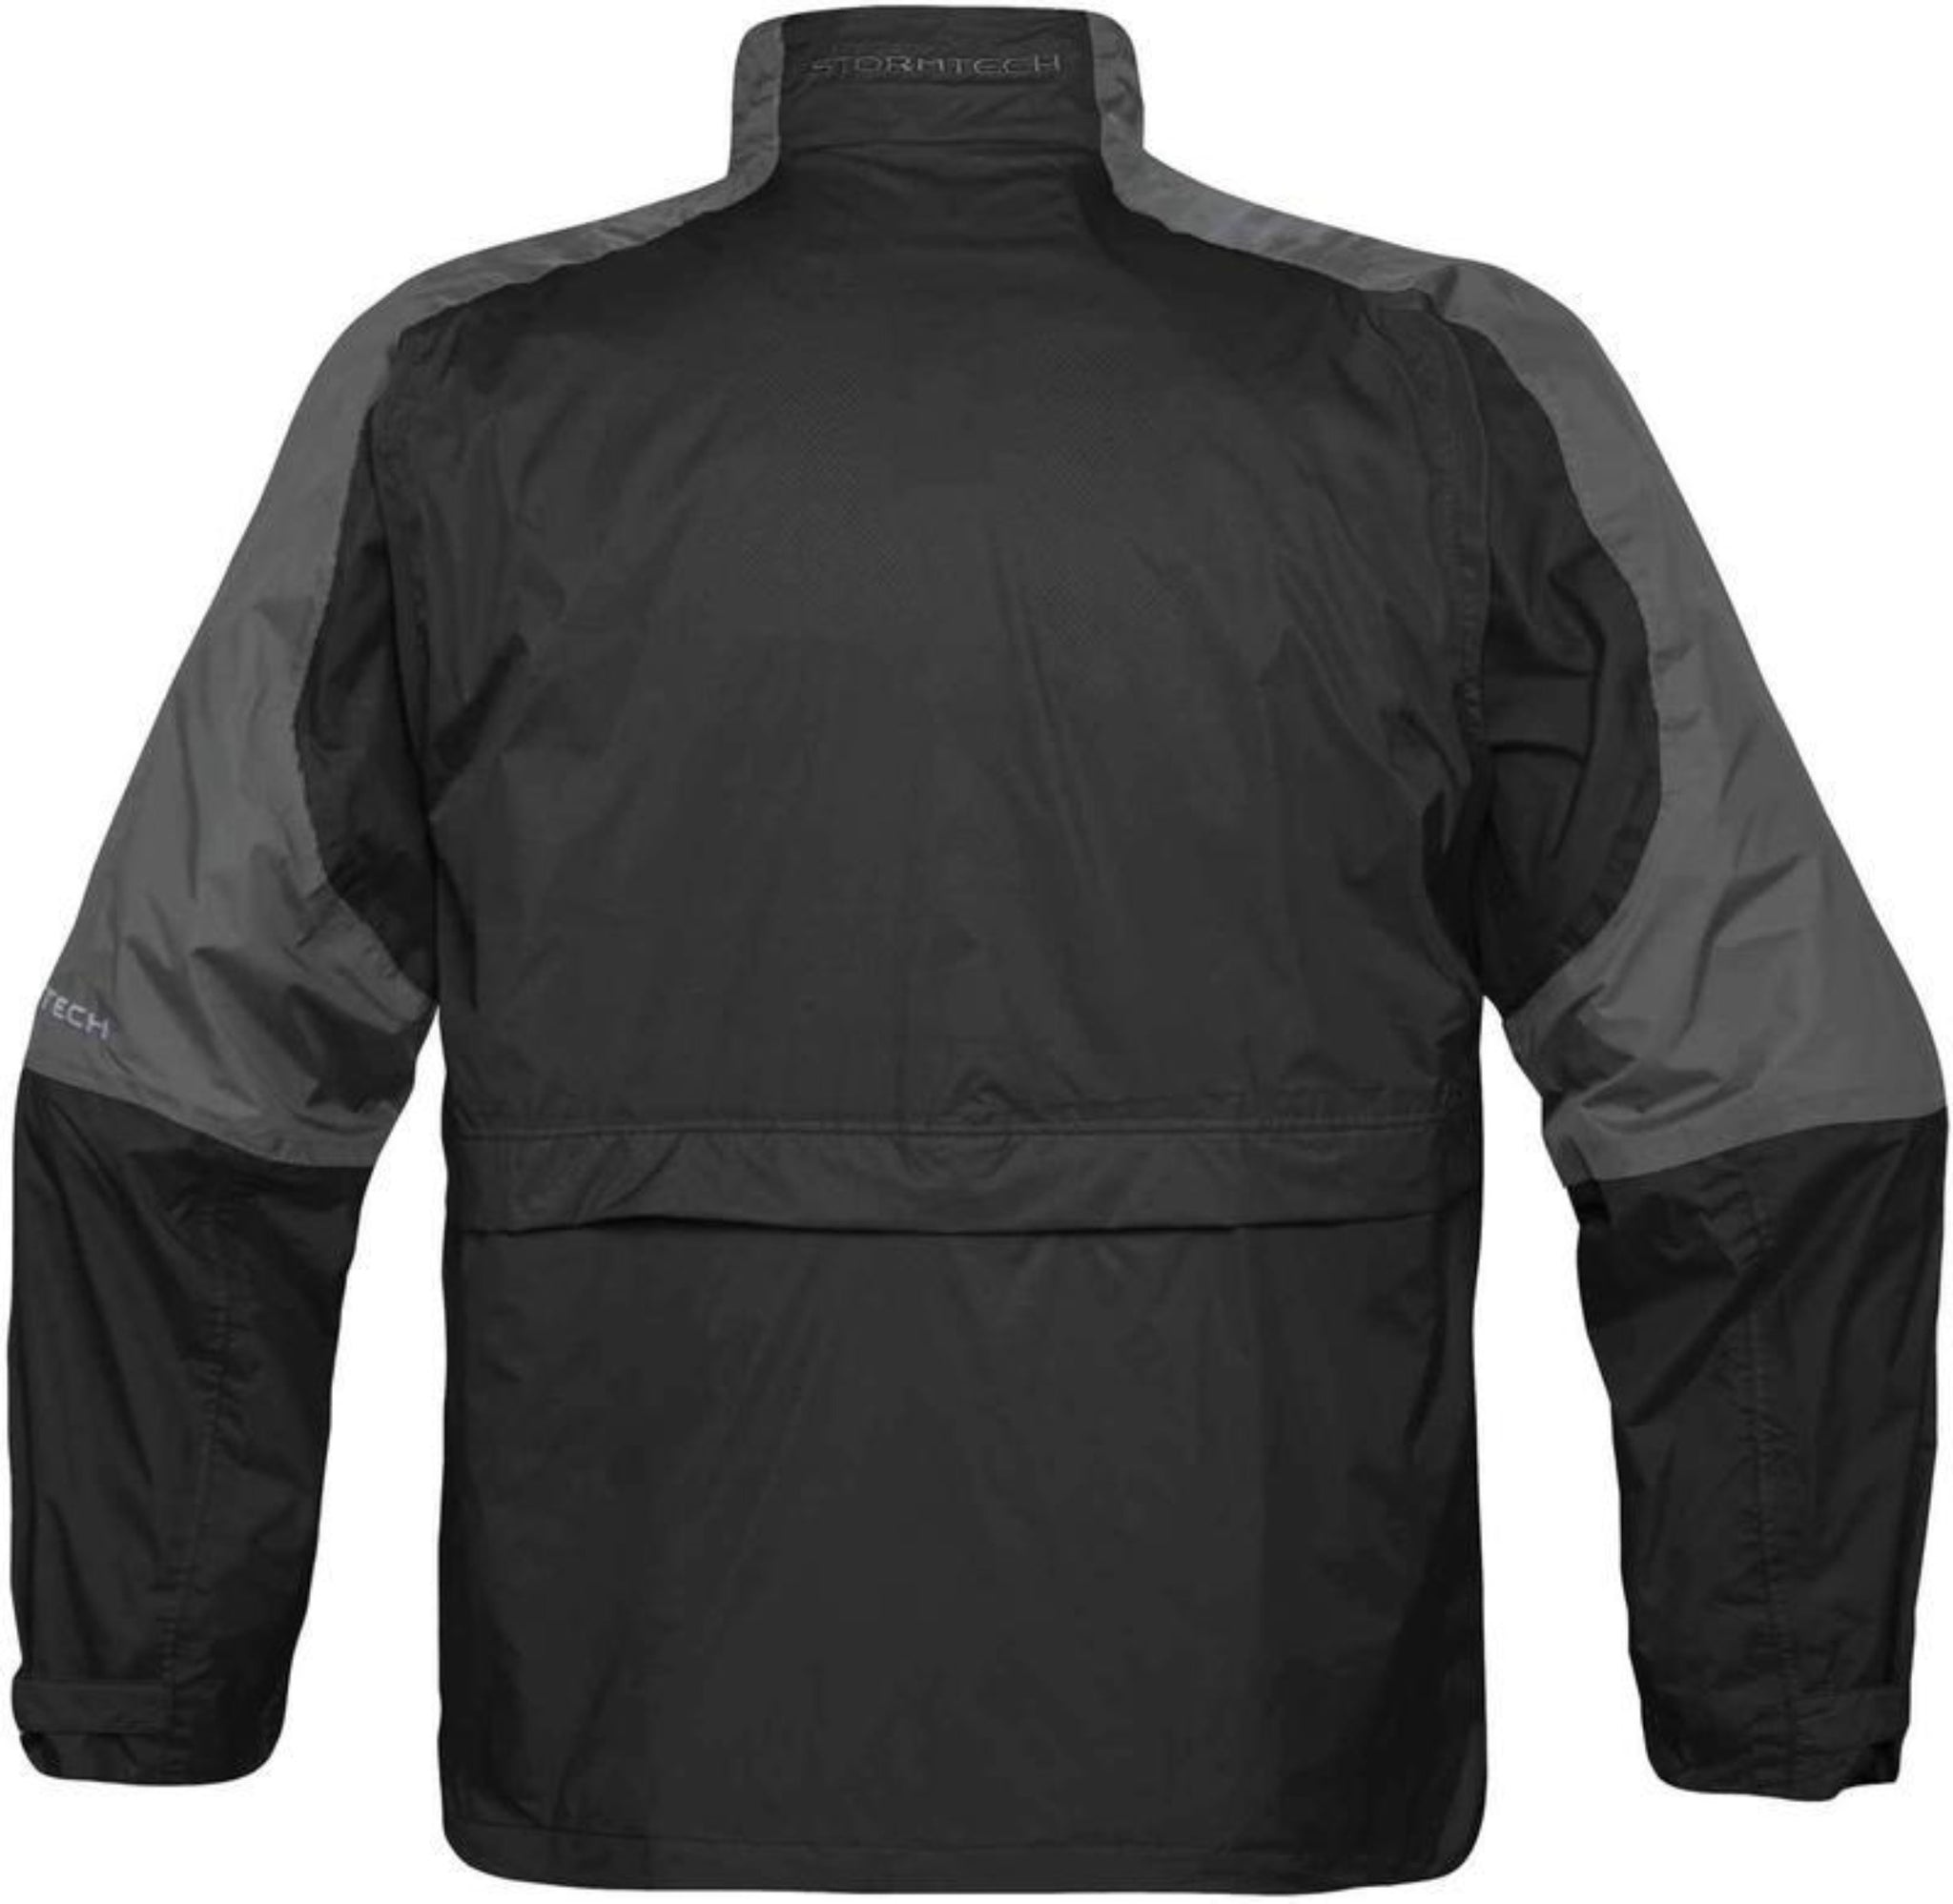 STORMTECH LADIES NAUTILUS PACKABLE STORM JACKET